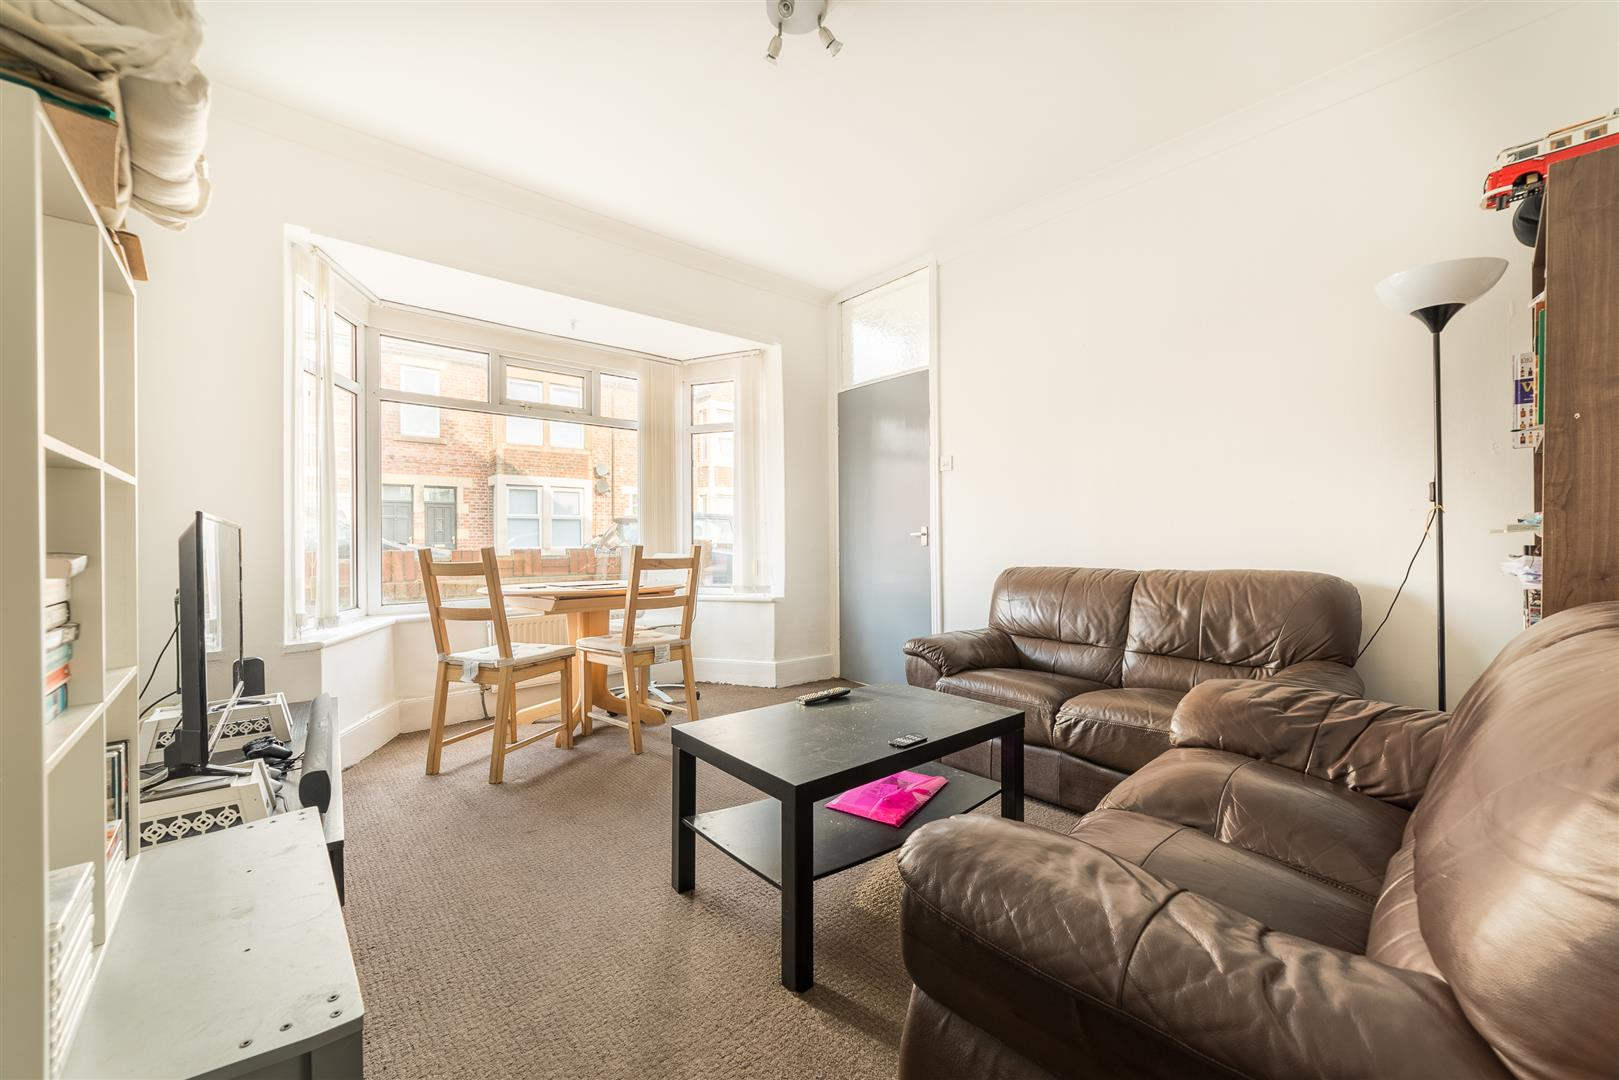 2 bed flat to rent in Seventh Avenue, Newcastle Upon Tyne, NE6